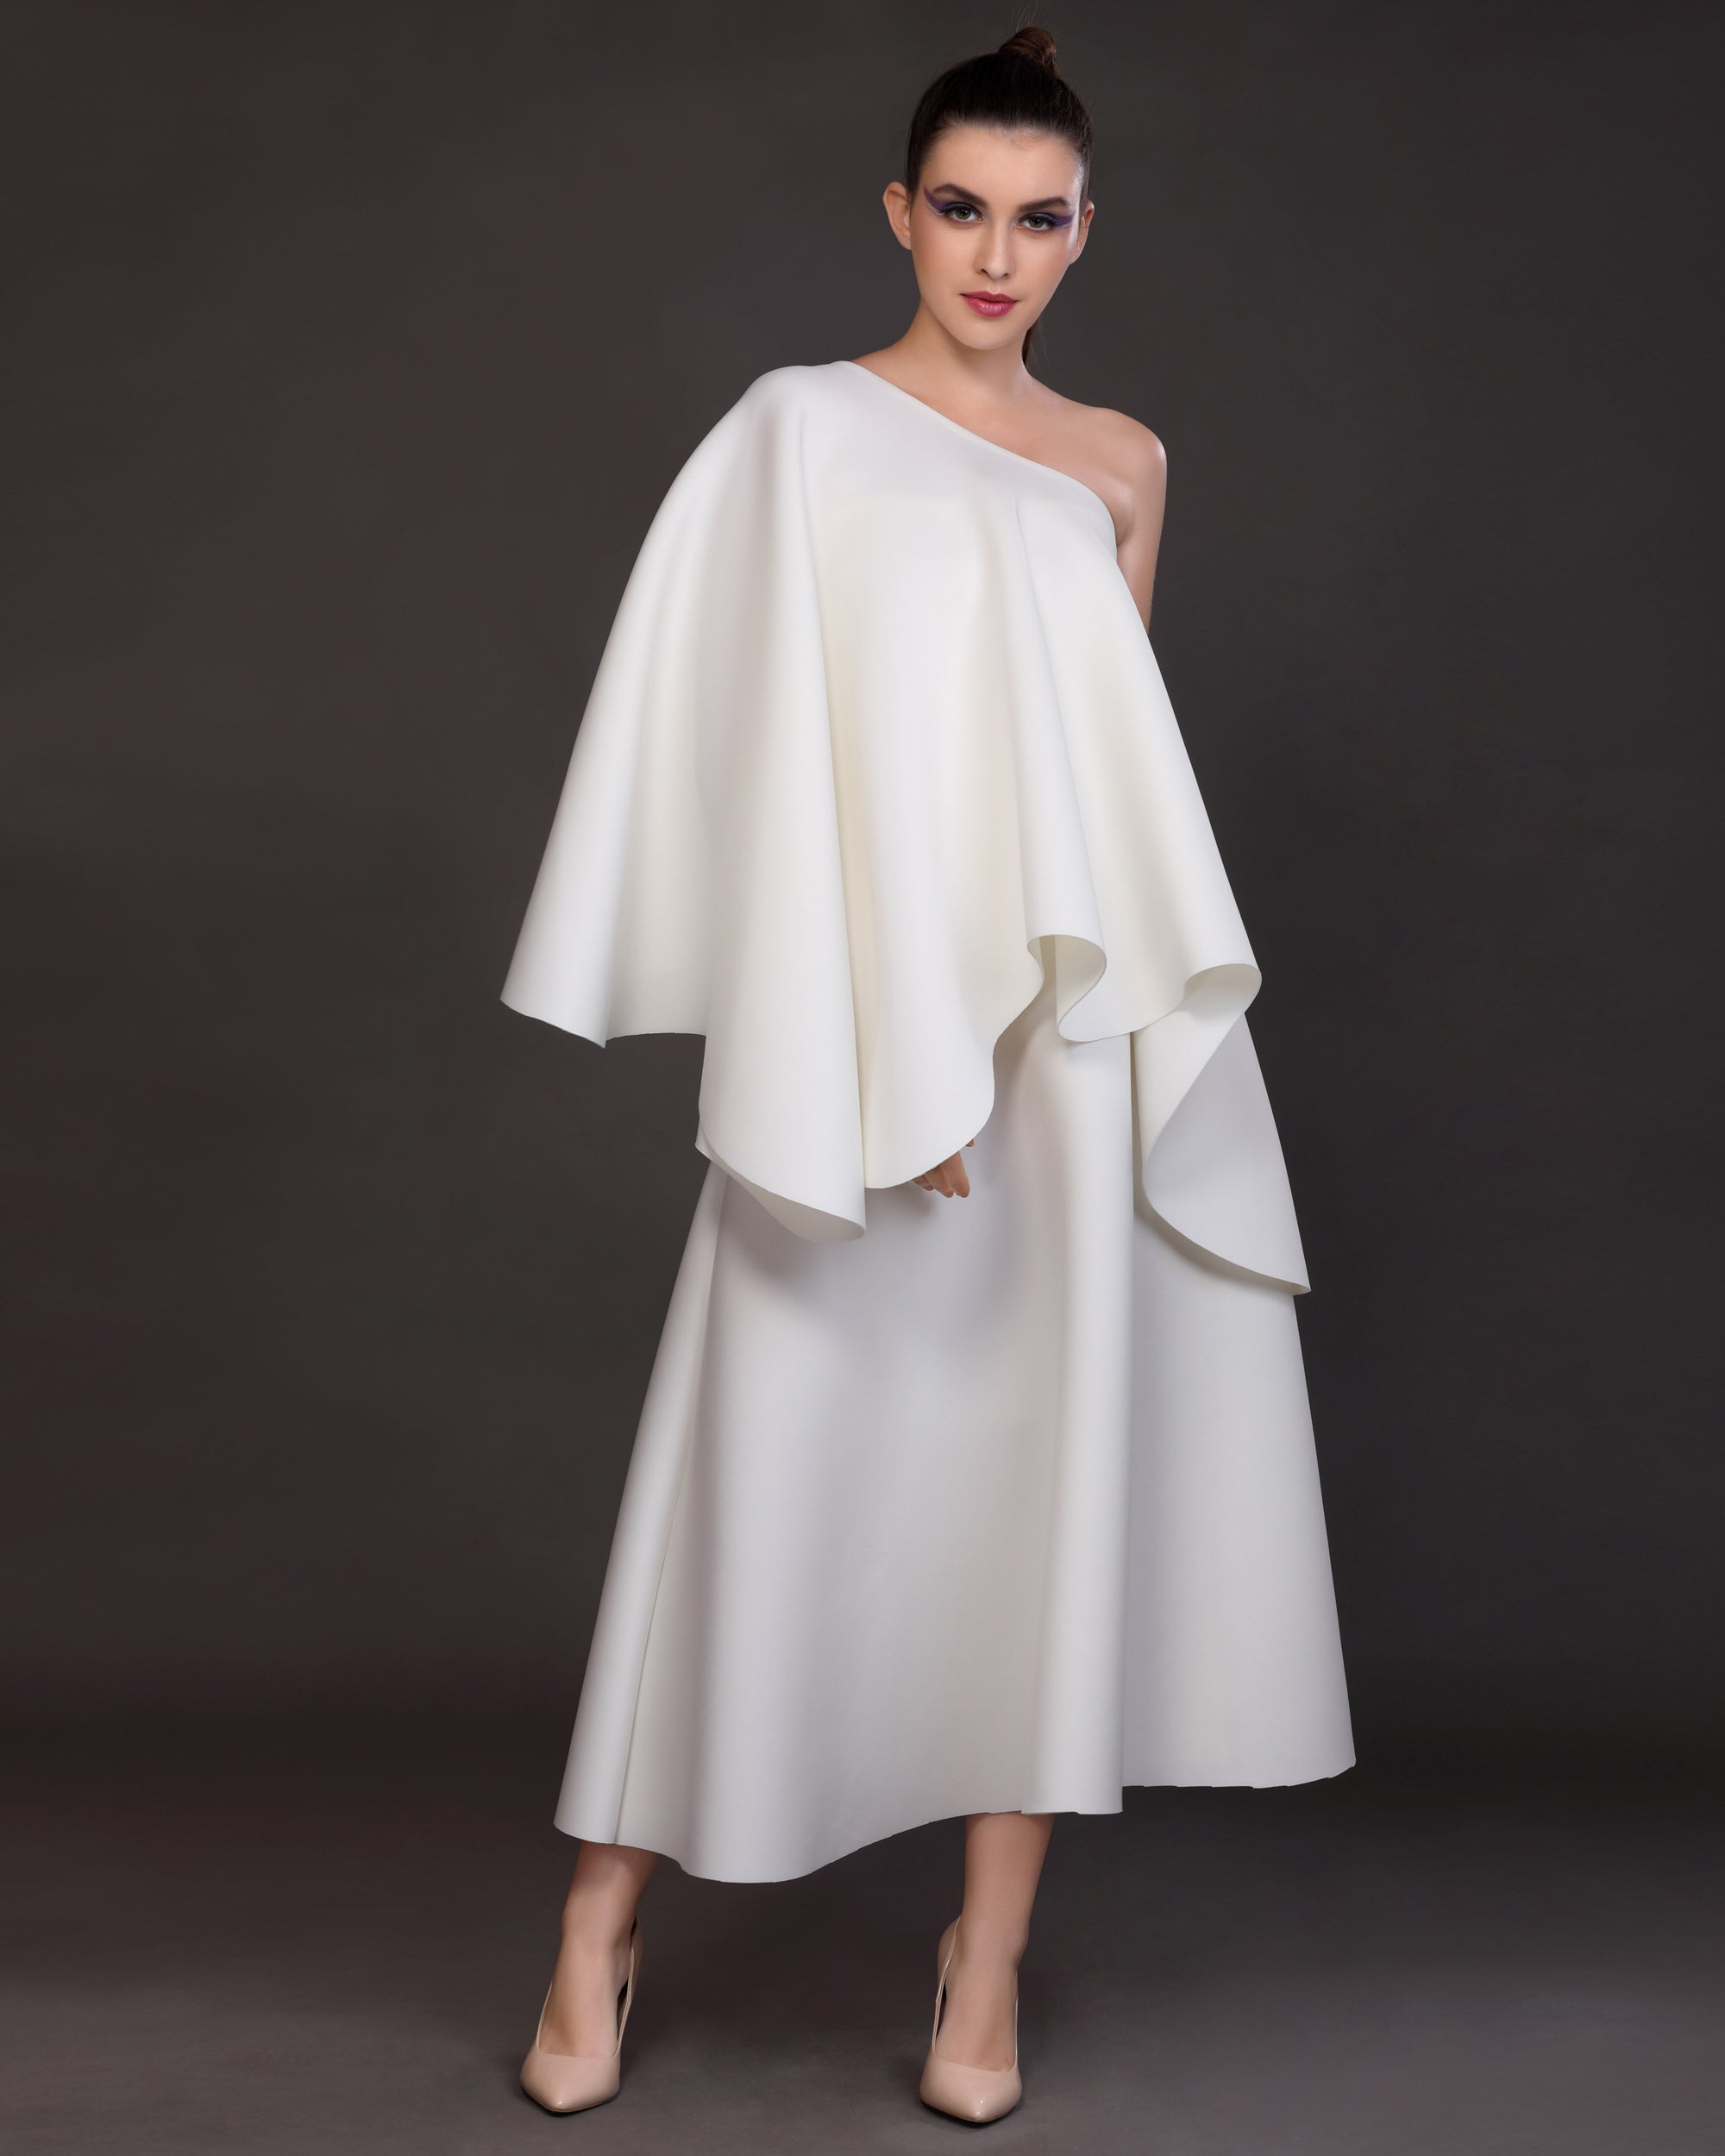 Essence- Voluminous high-low cape